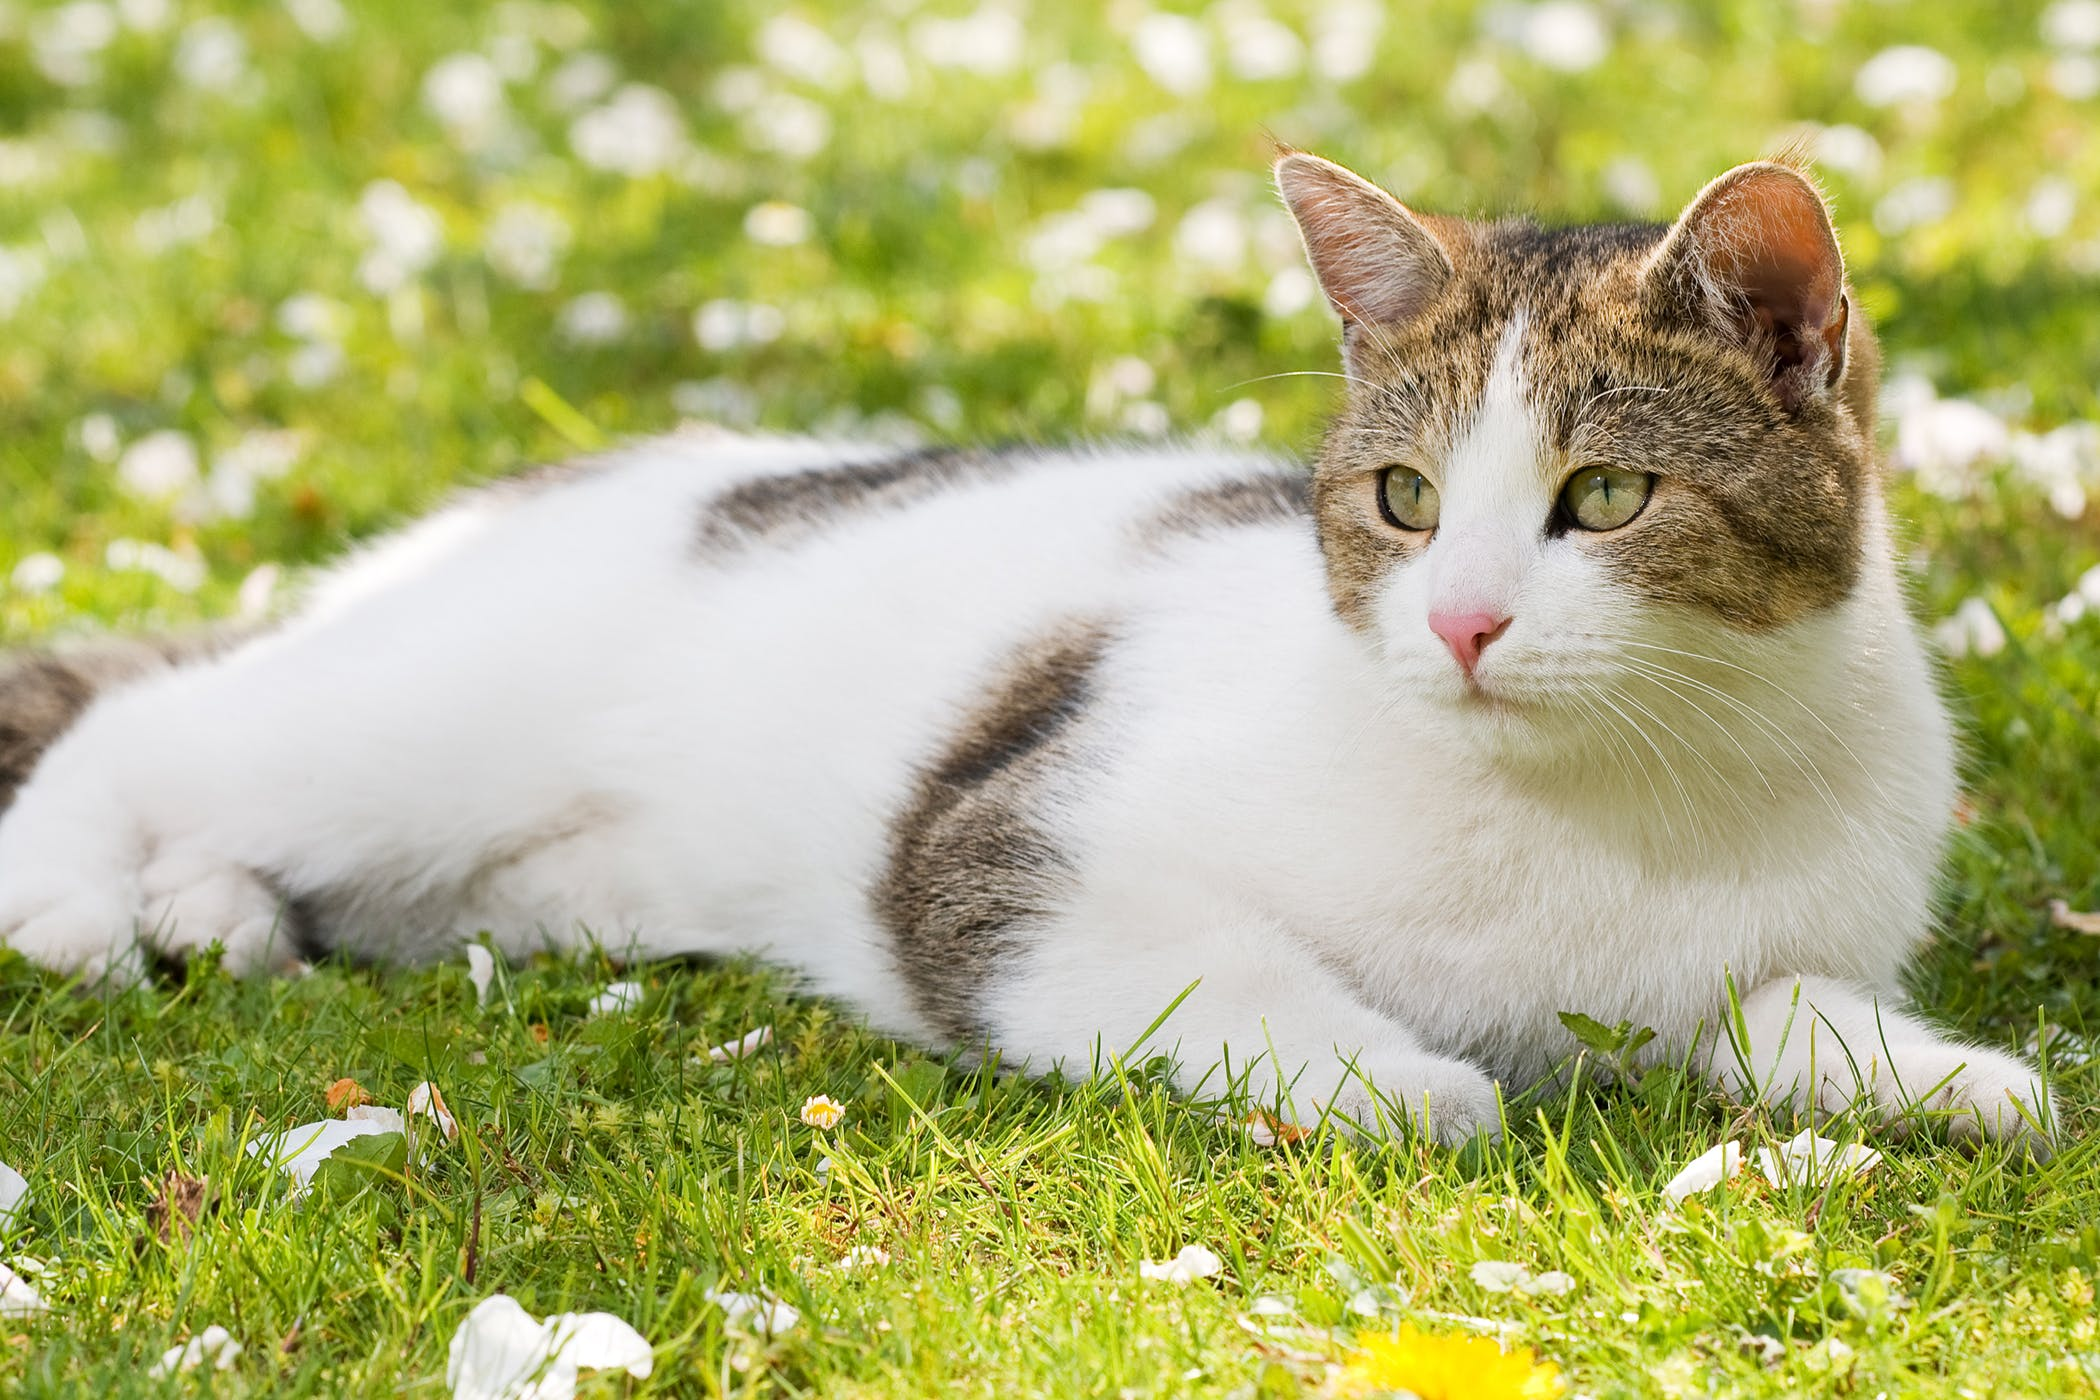 hepatic lipidosis in cats